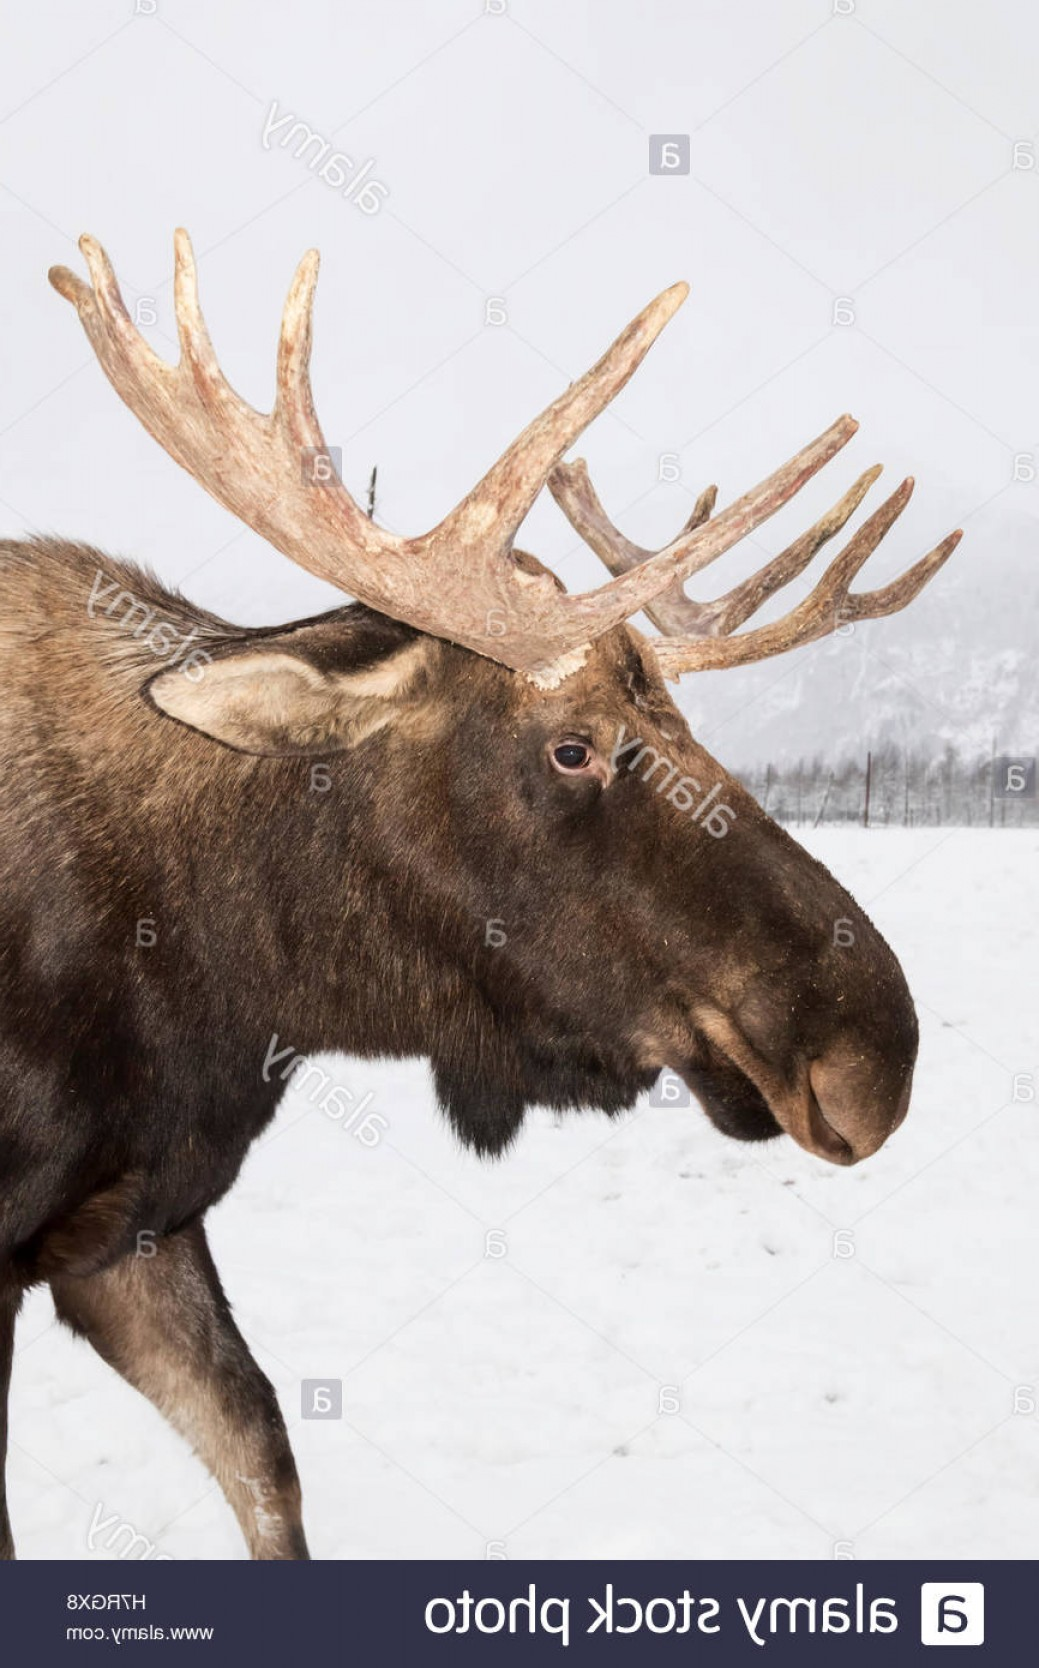 Alaska Moose Vectors: Stock Photo Captive Close Up Profile Of A Bull Moose With Antlers Alaska Wildlife